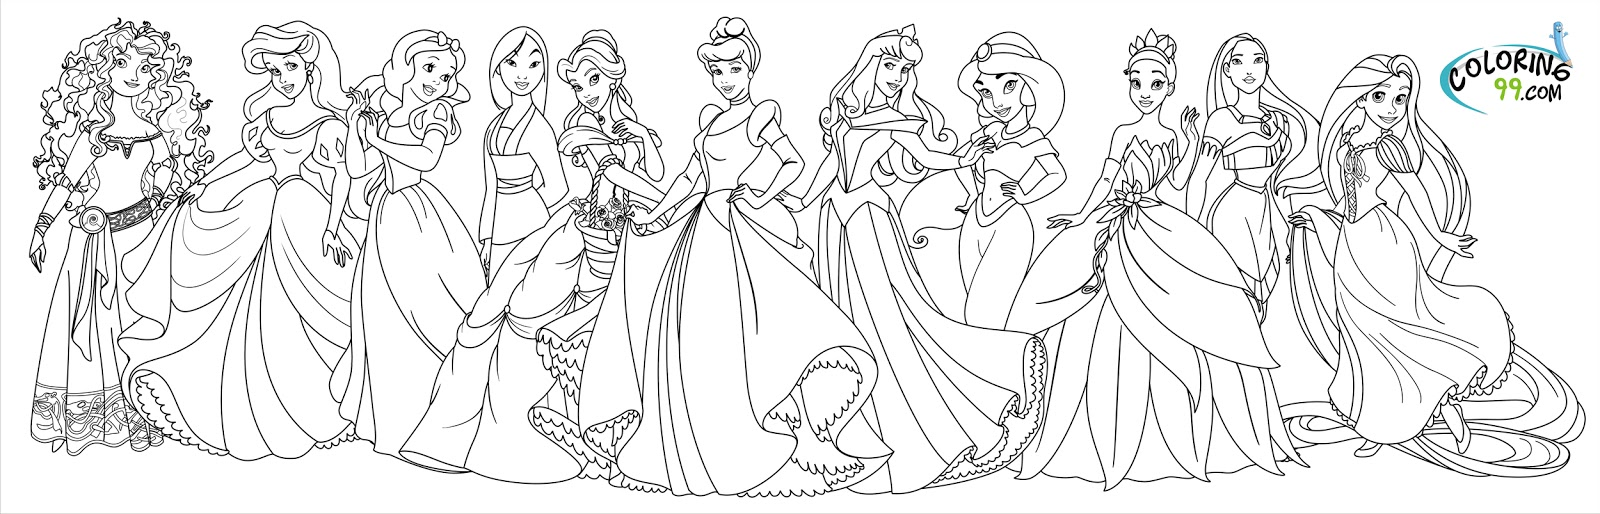 meridas face coloring pages - photo#31